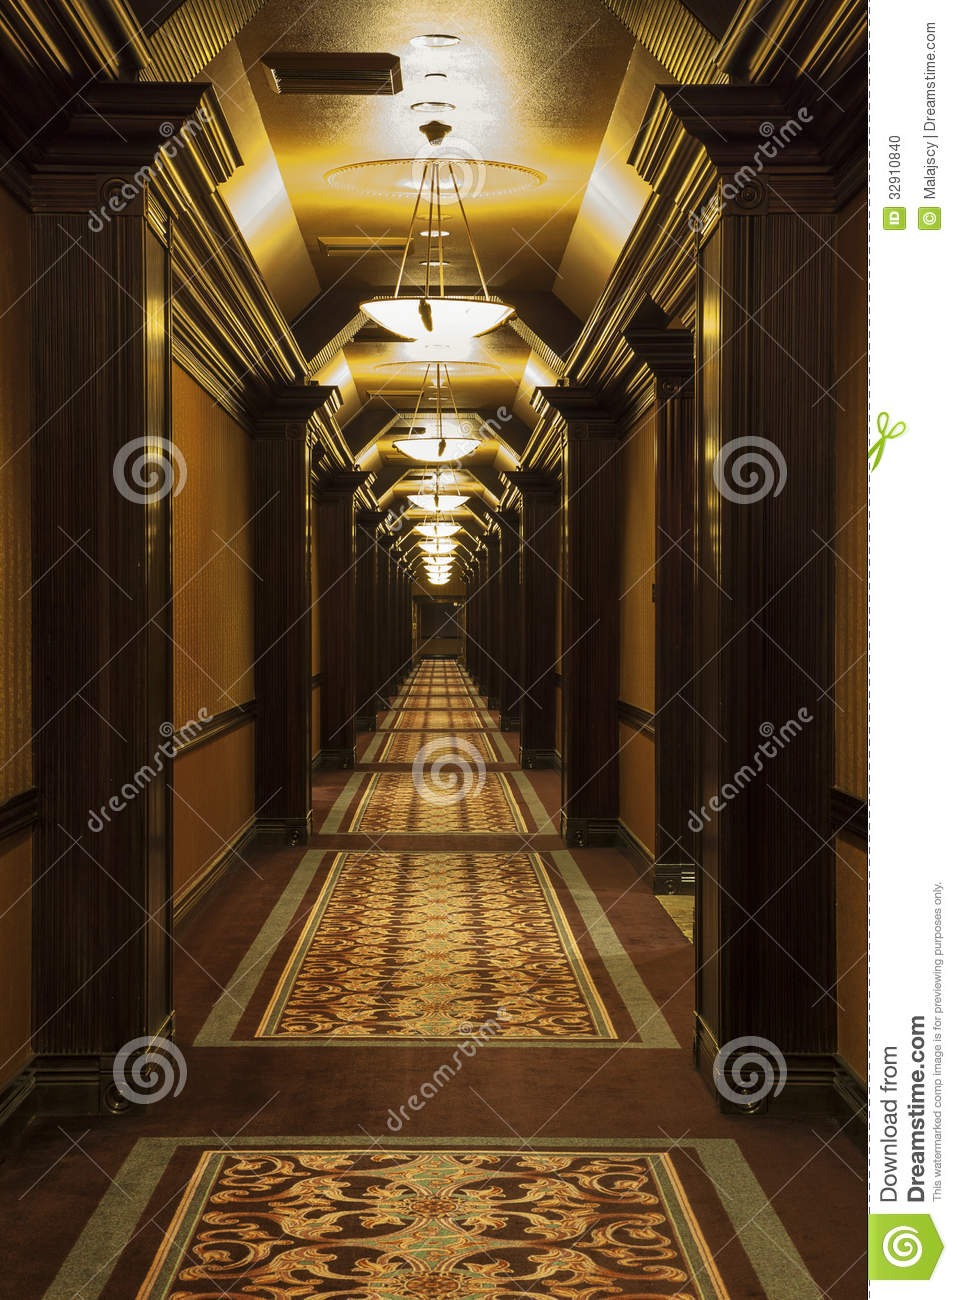 Long art deco corridor stock photo image of revival 32910840 - Deco corridor schilderij ...